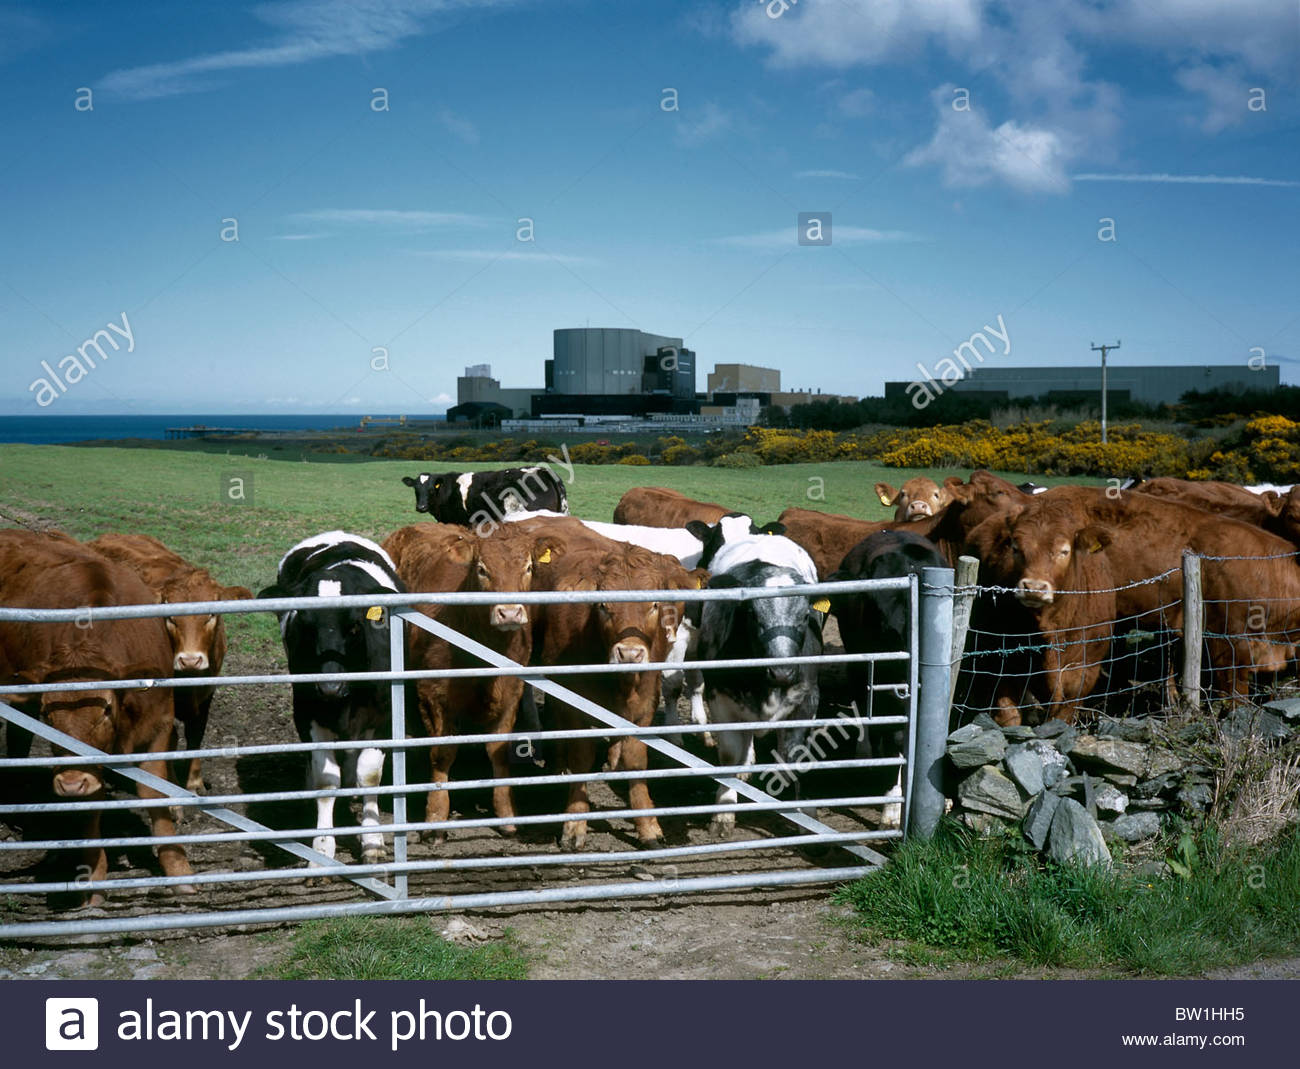 Herd of cows near Wylfa nuclear power station, Anglesey, Wales. April 2009 - Stock Image